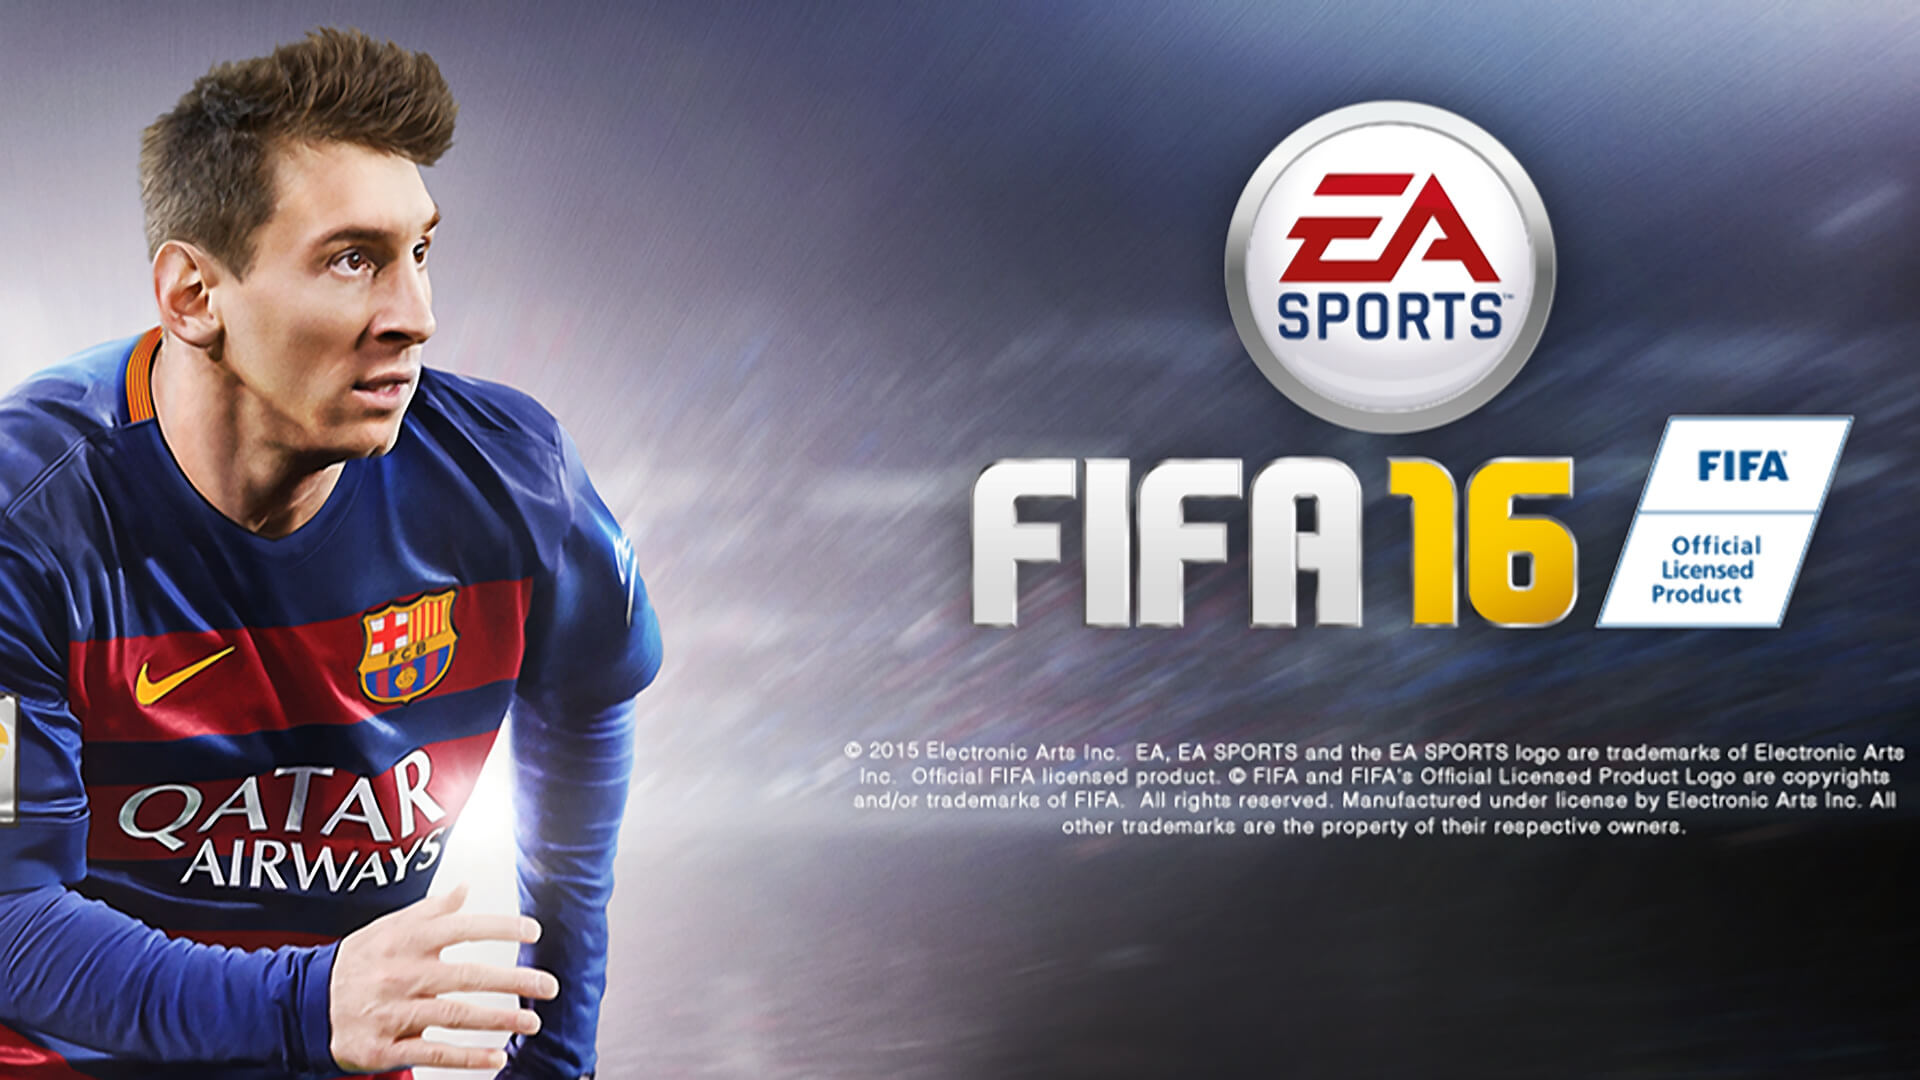 FIFA 16 Leo Messi 2016 Official Cover Poster Wallpaper